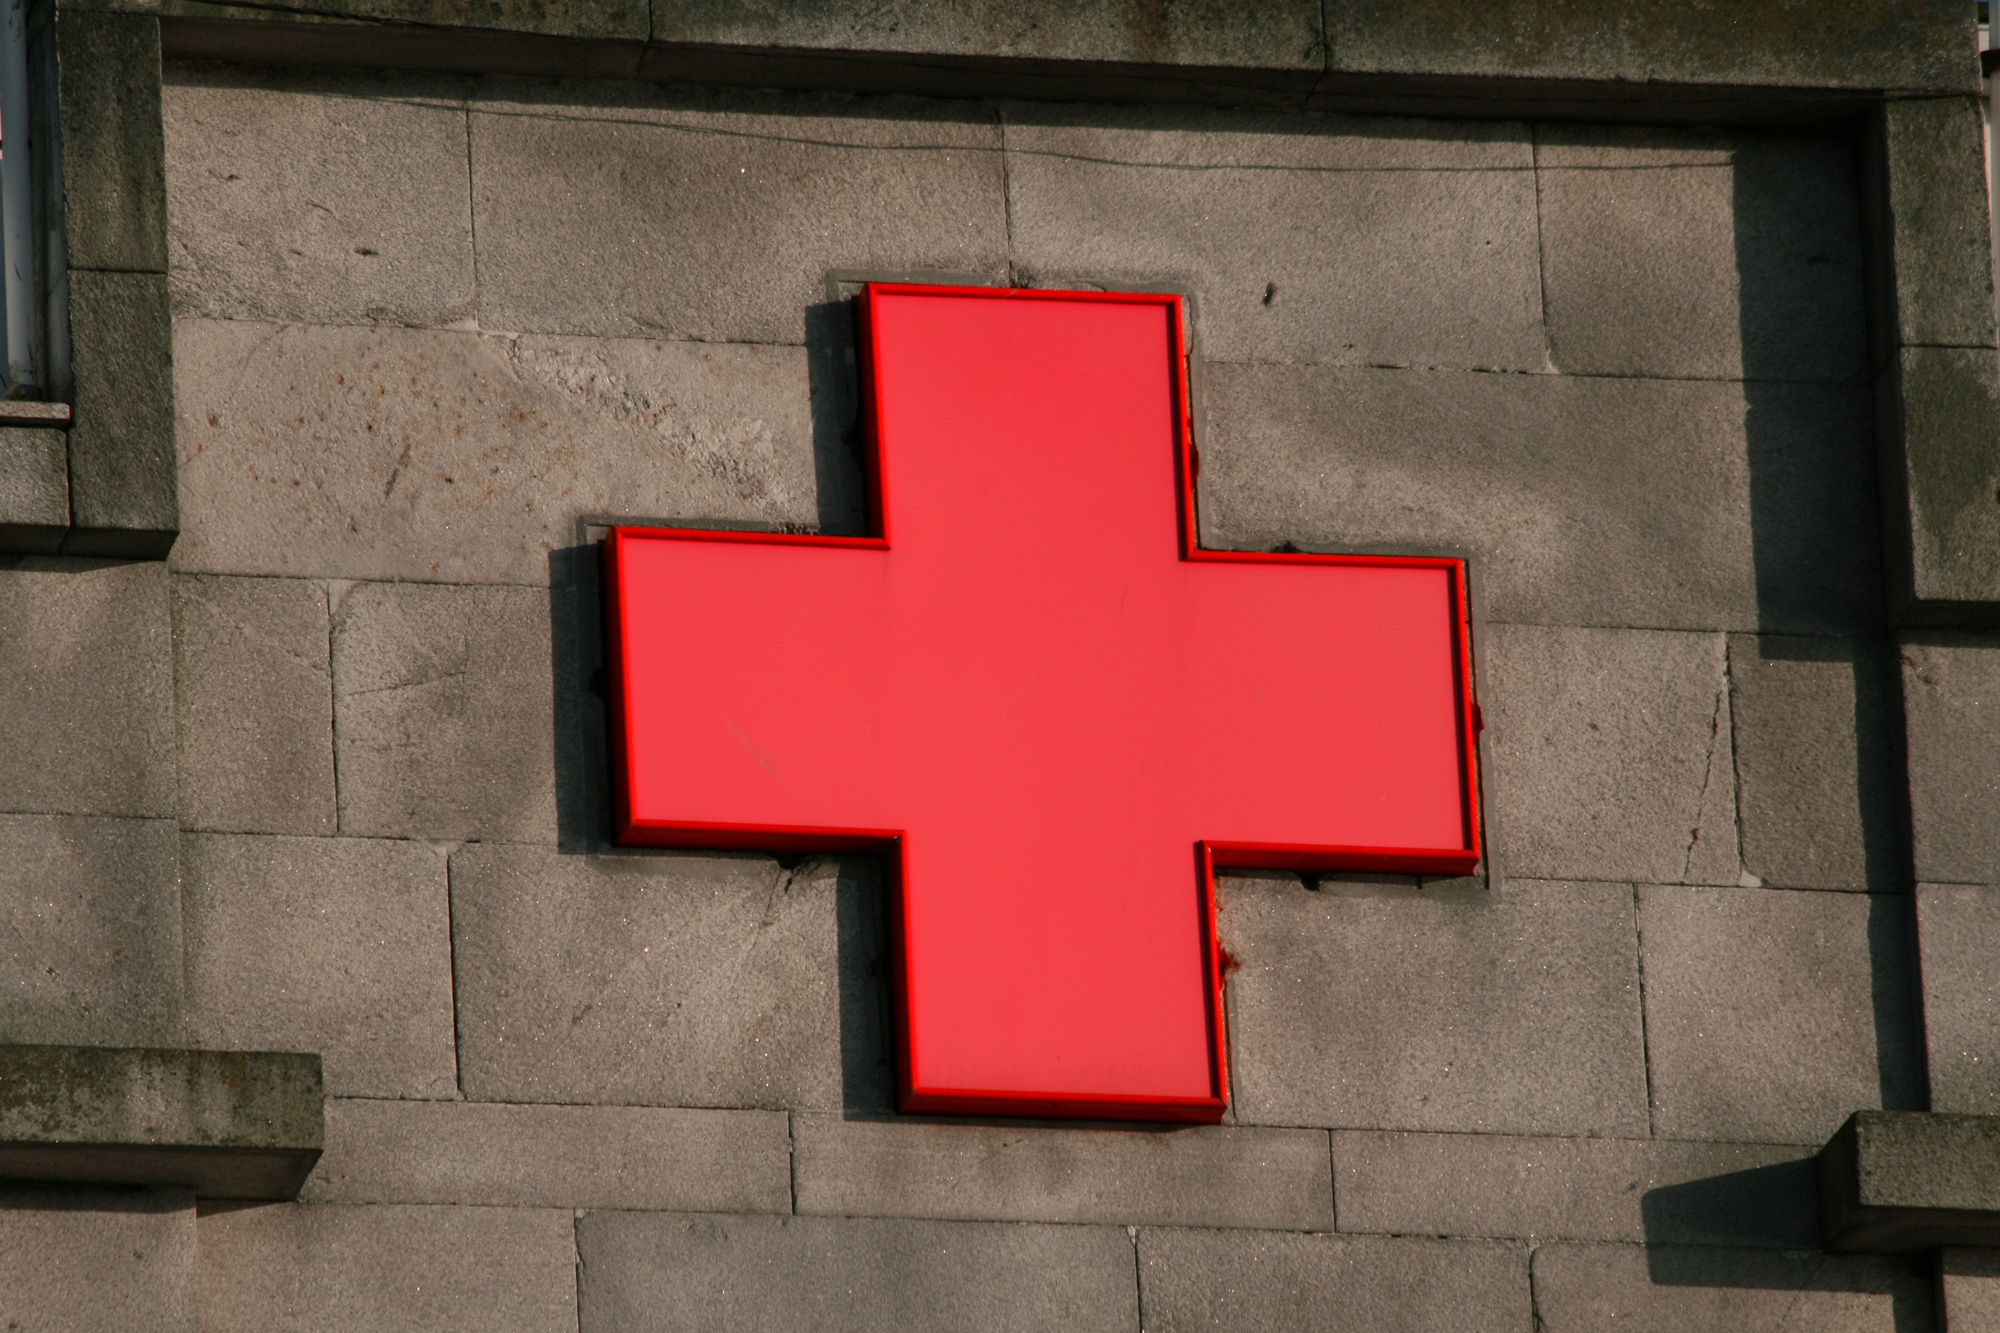 Can donors trust the American Red Cross?